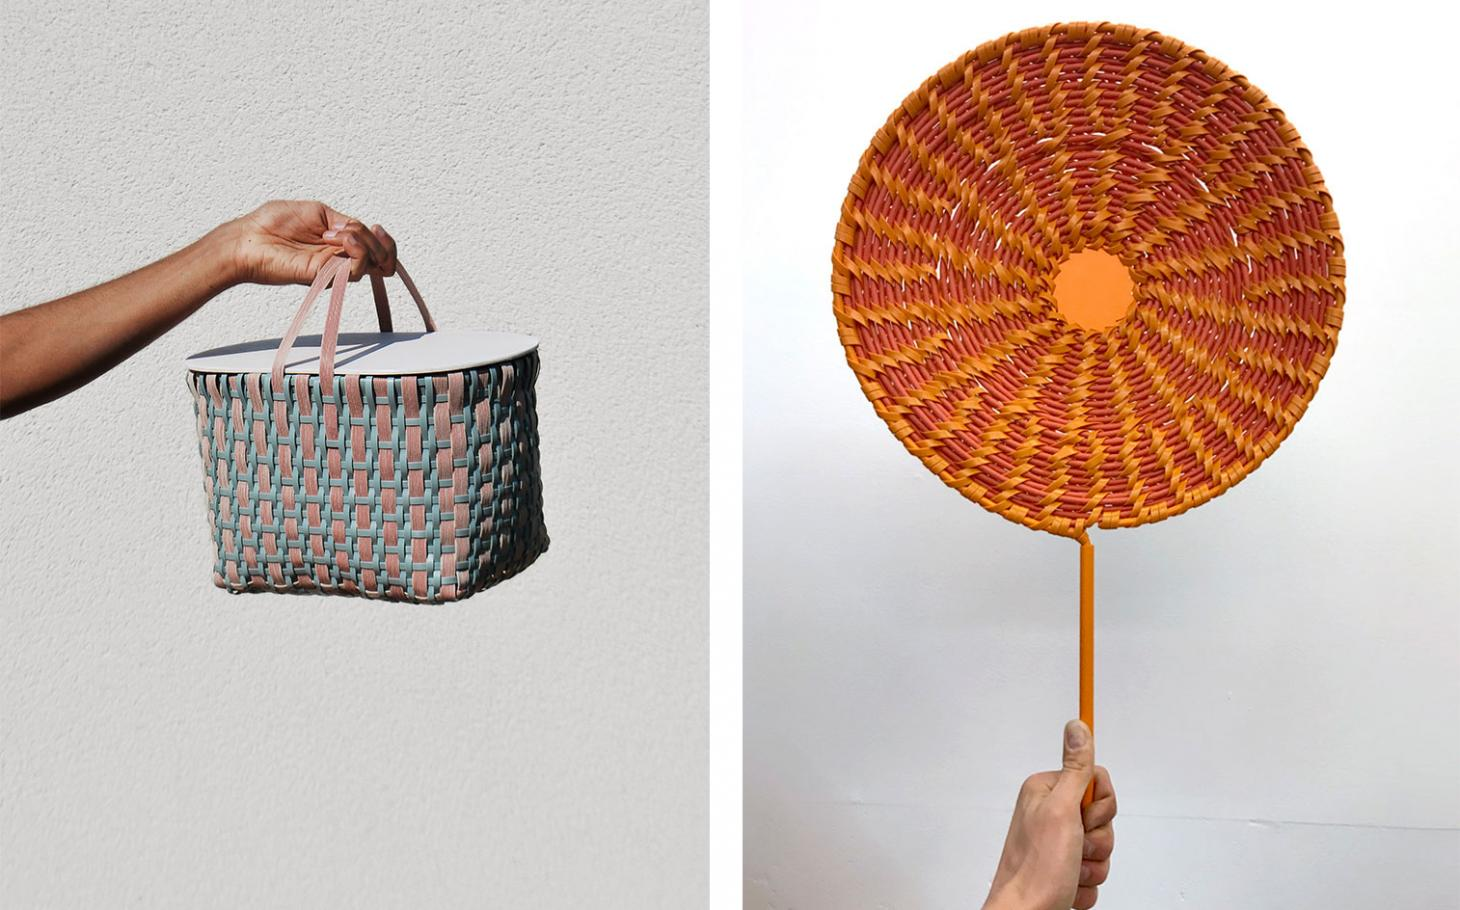 Two images of woven pieces part of the Basketclub project. Left, a hand holds a rigid basket woven with pink and blue cord. Right, a hand holds a round fan in red and orange